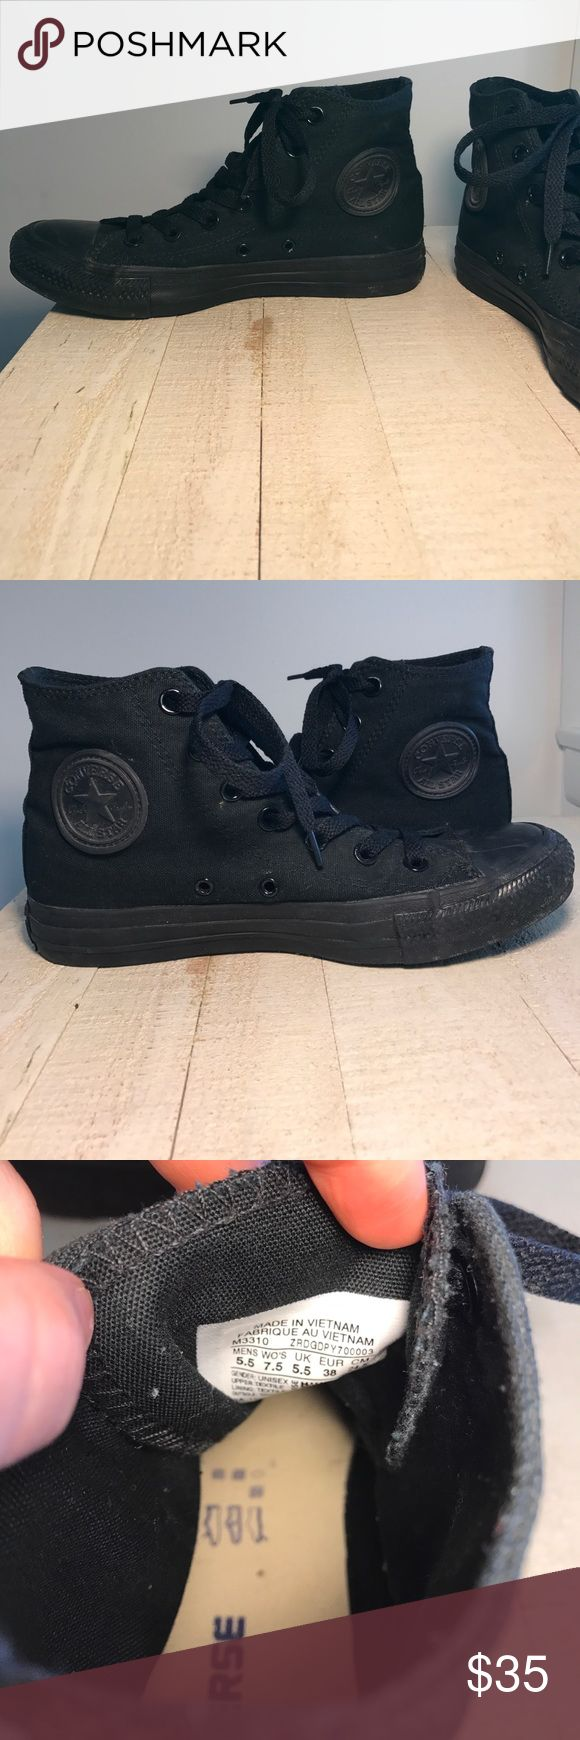 All black high top converse High top all black lace up converse Converse Shoes Sneakers